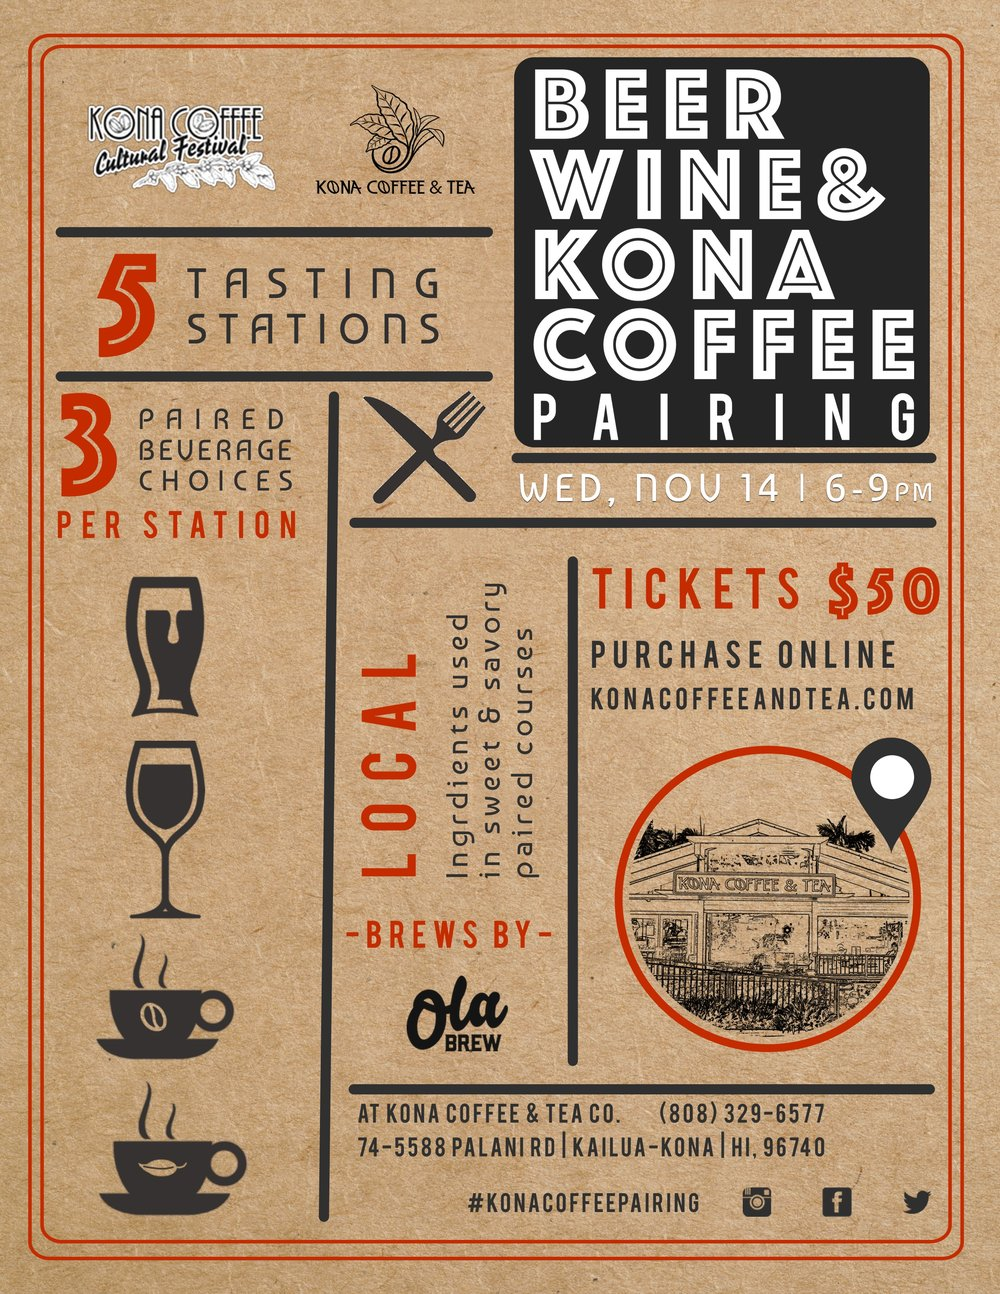 Web Poster_Beer Wine and Kona Coffee Pairing_8.5x11 Poster_11.14.18.jpg